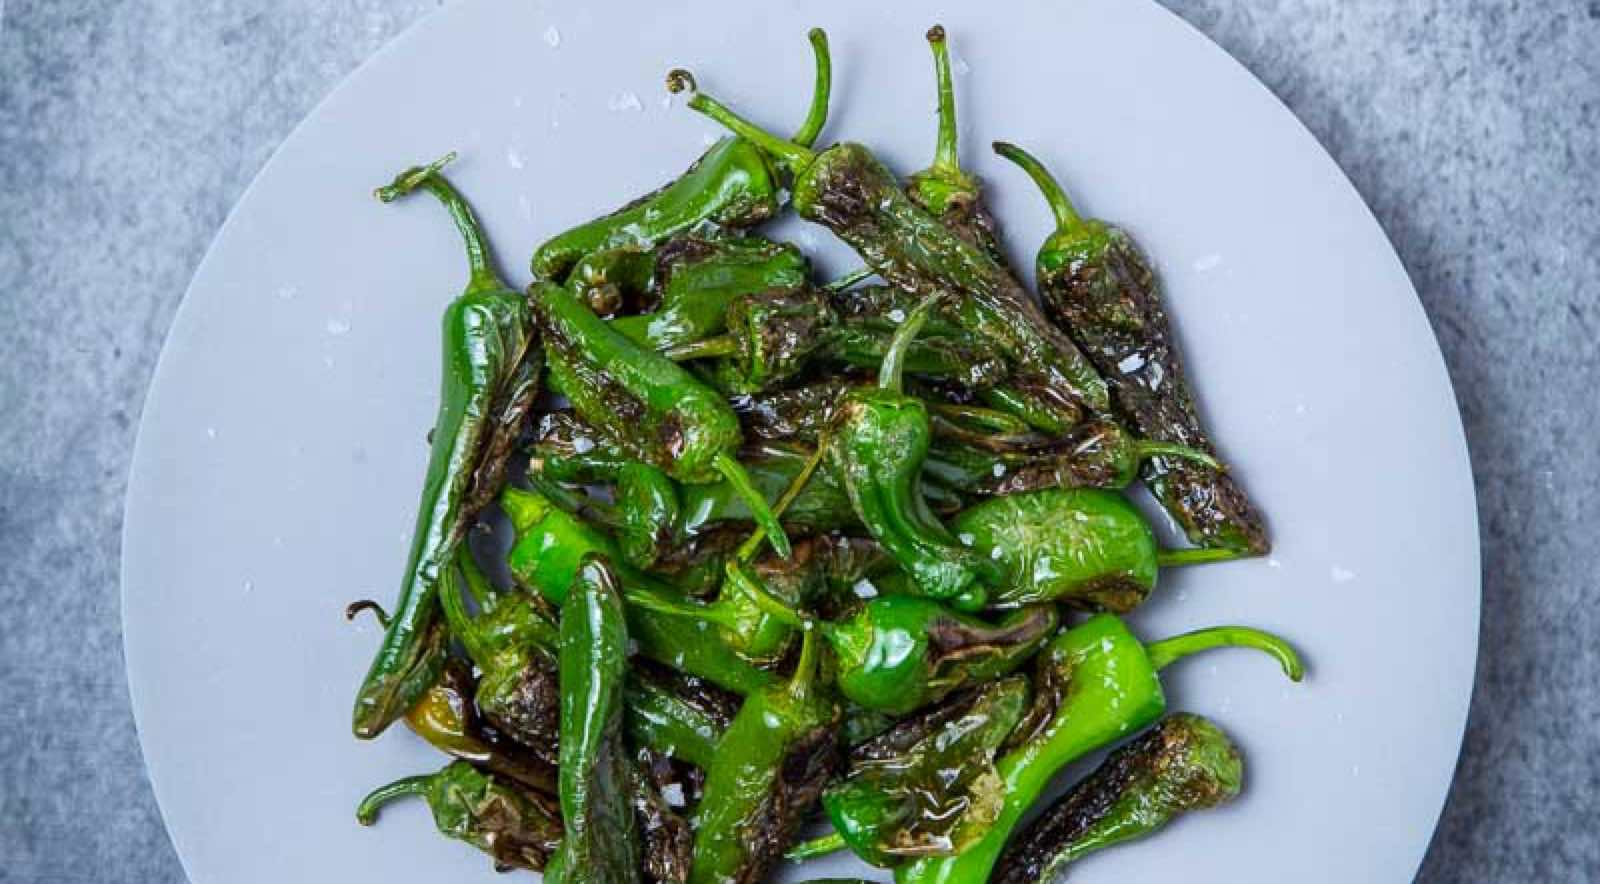 Pimientos de Padron took its name from the town of Padrón